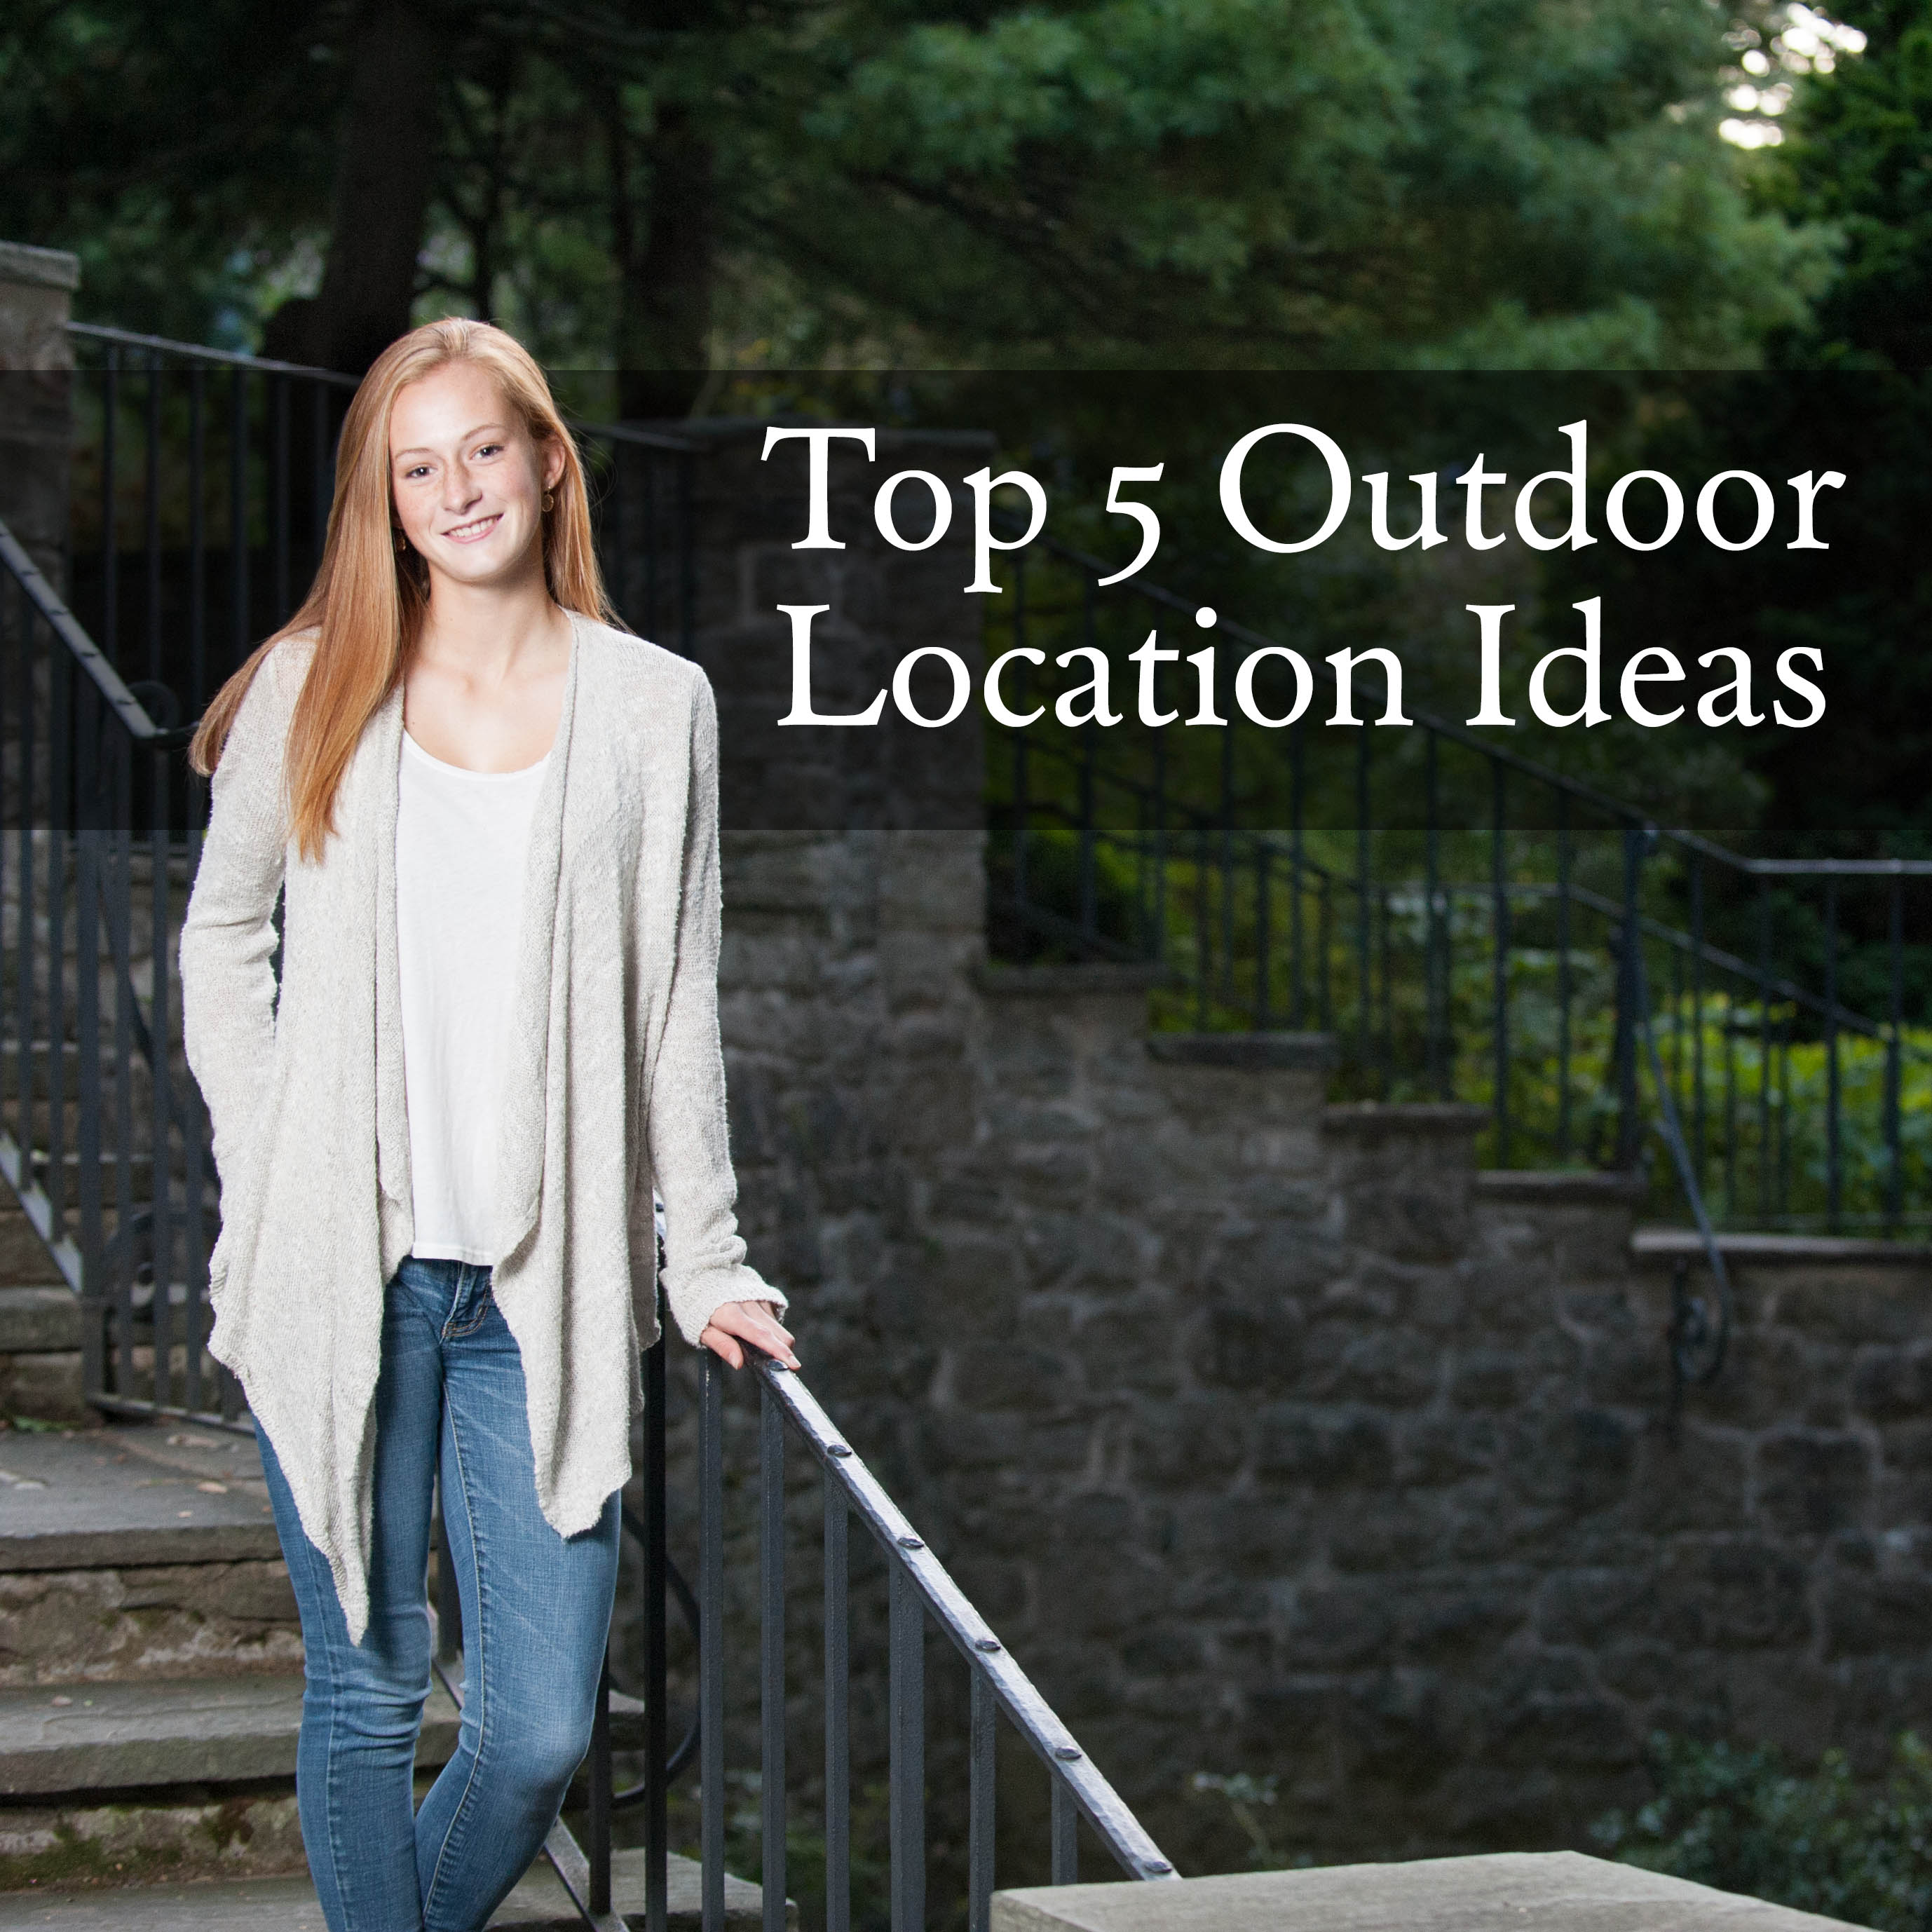 top 5 outdoor portrait photography location ideas in rochester ny